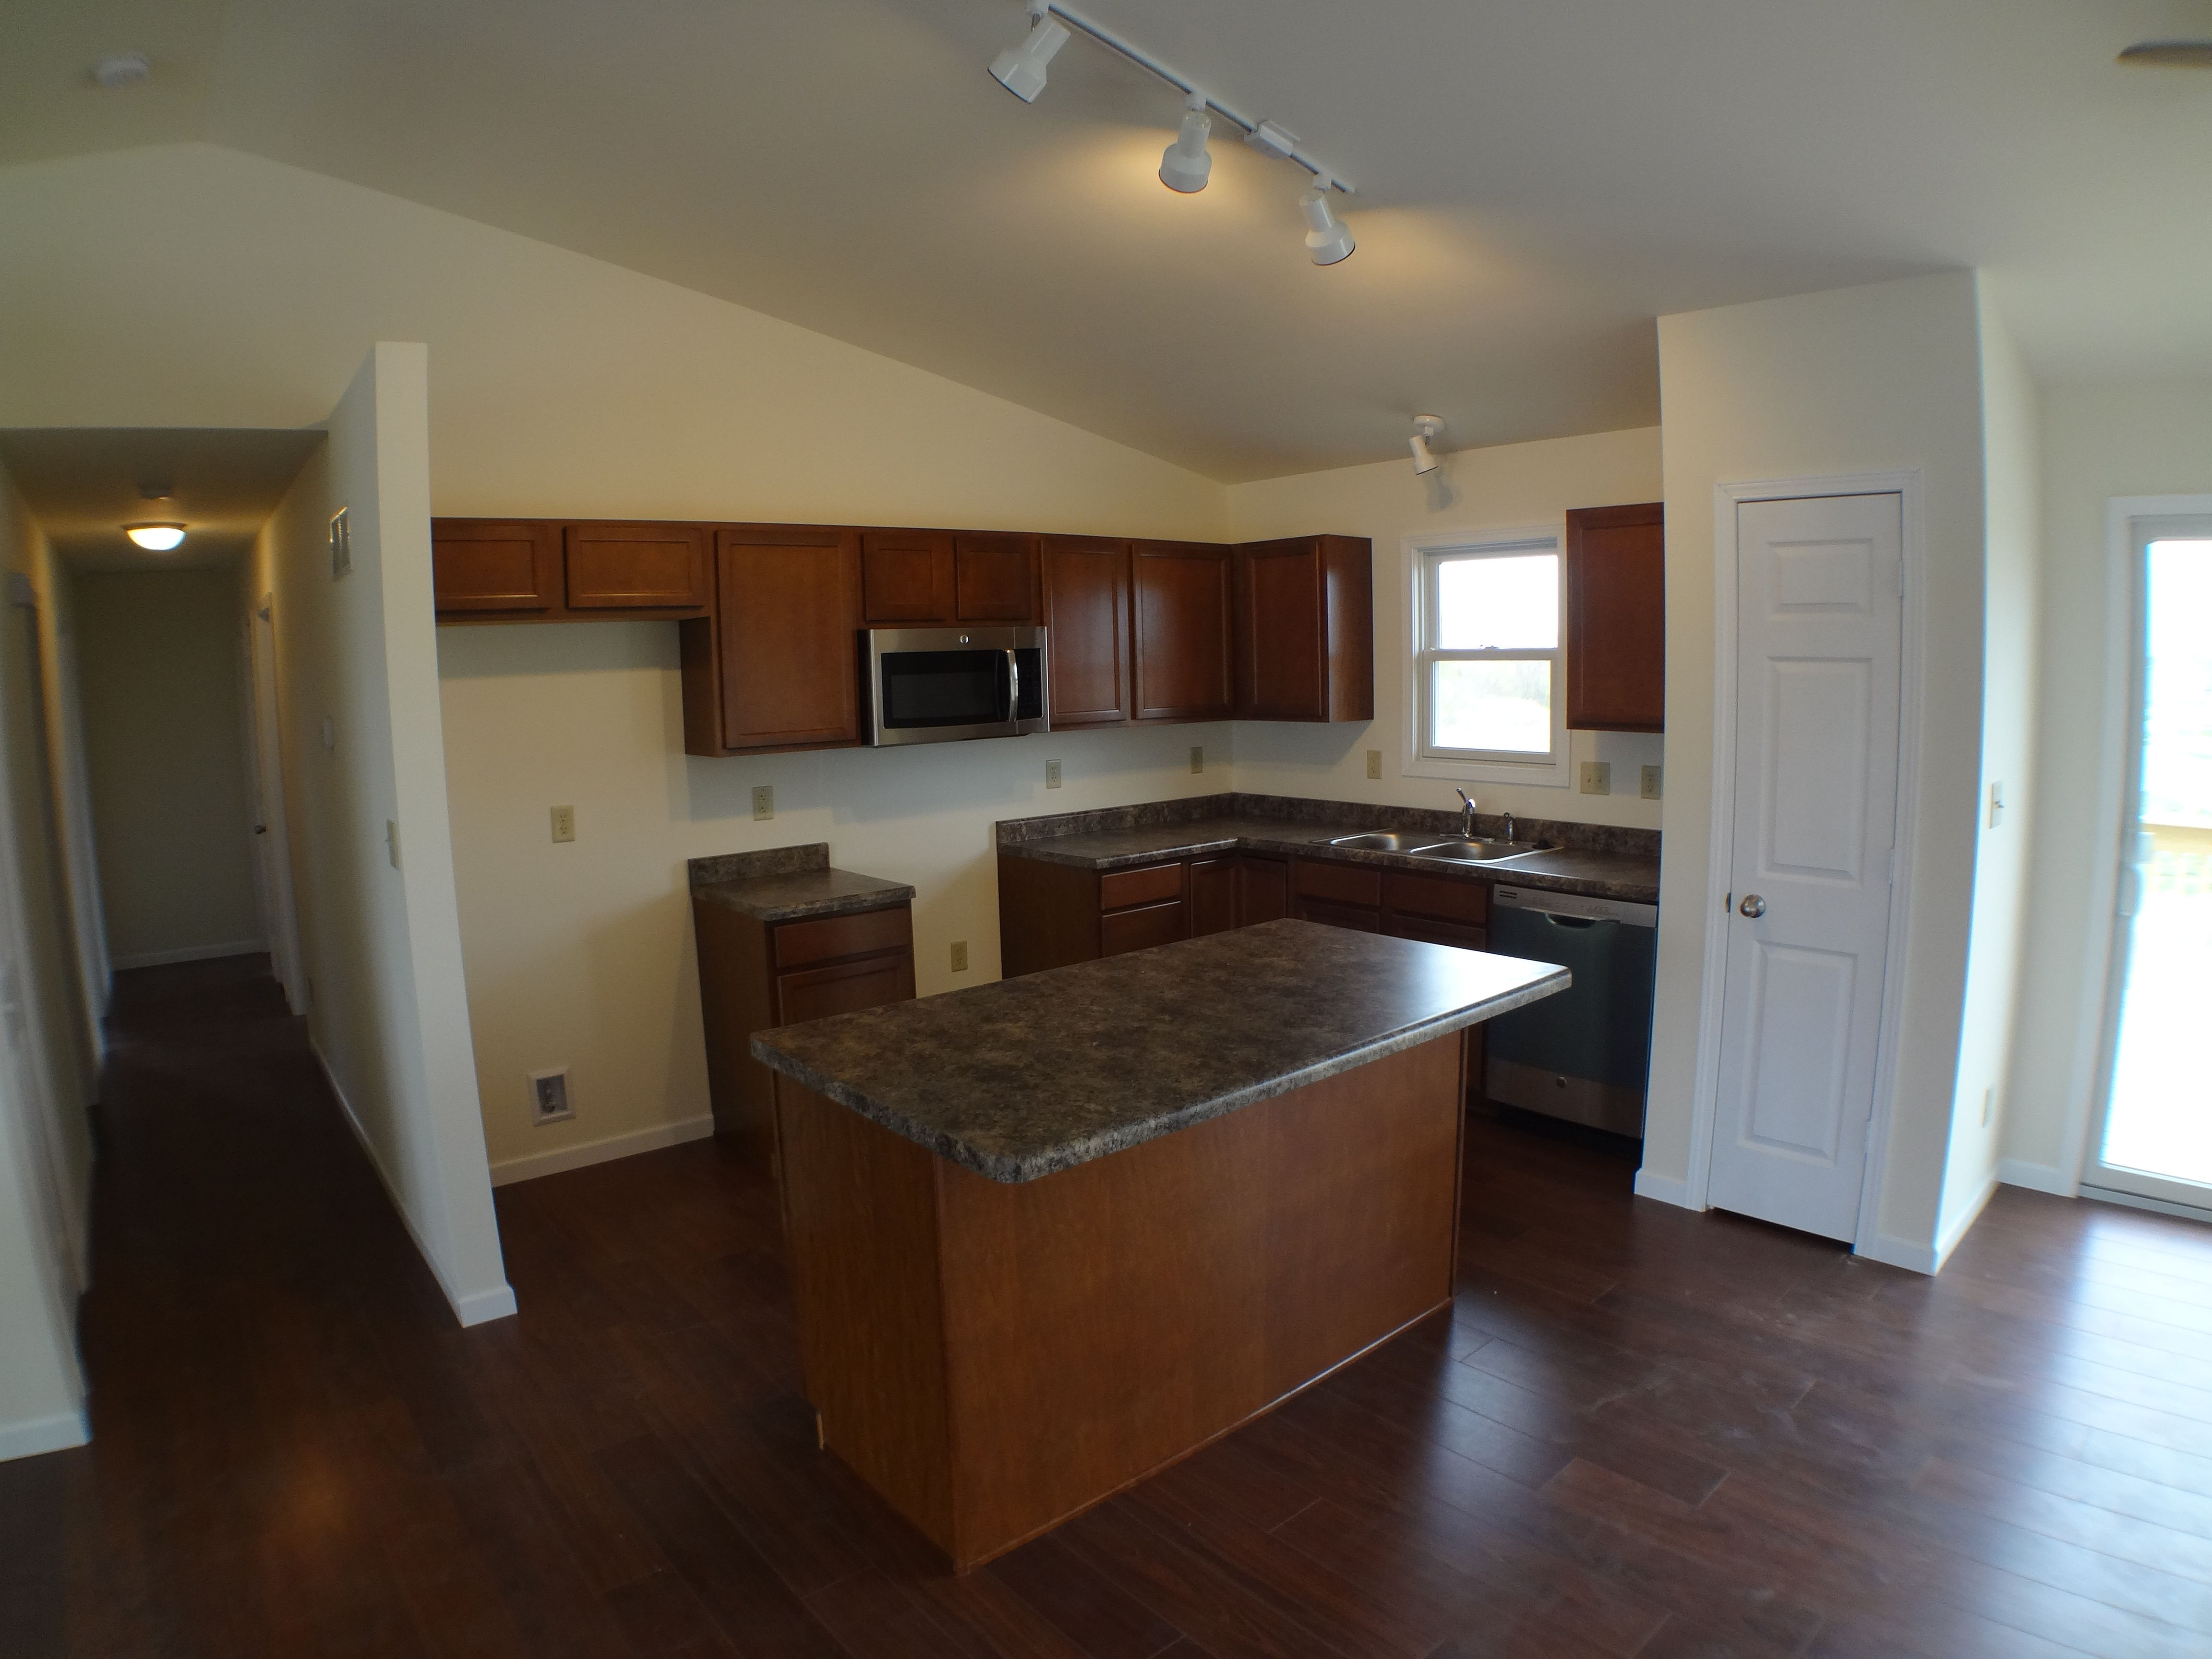 Kitchen featured in the Parkwood By Accent Homes Inc. in Gary, IN